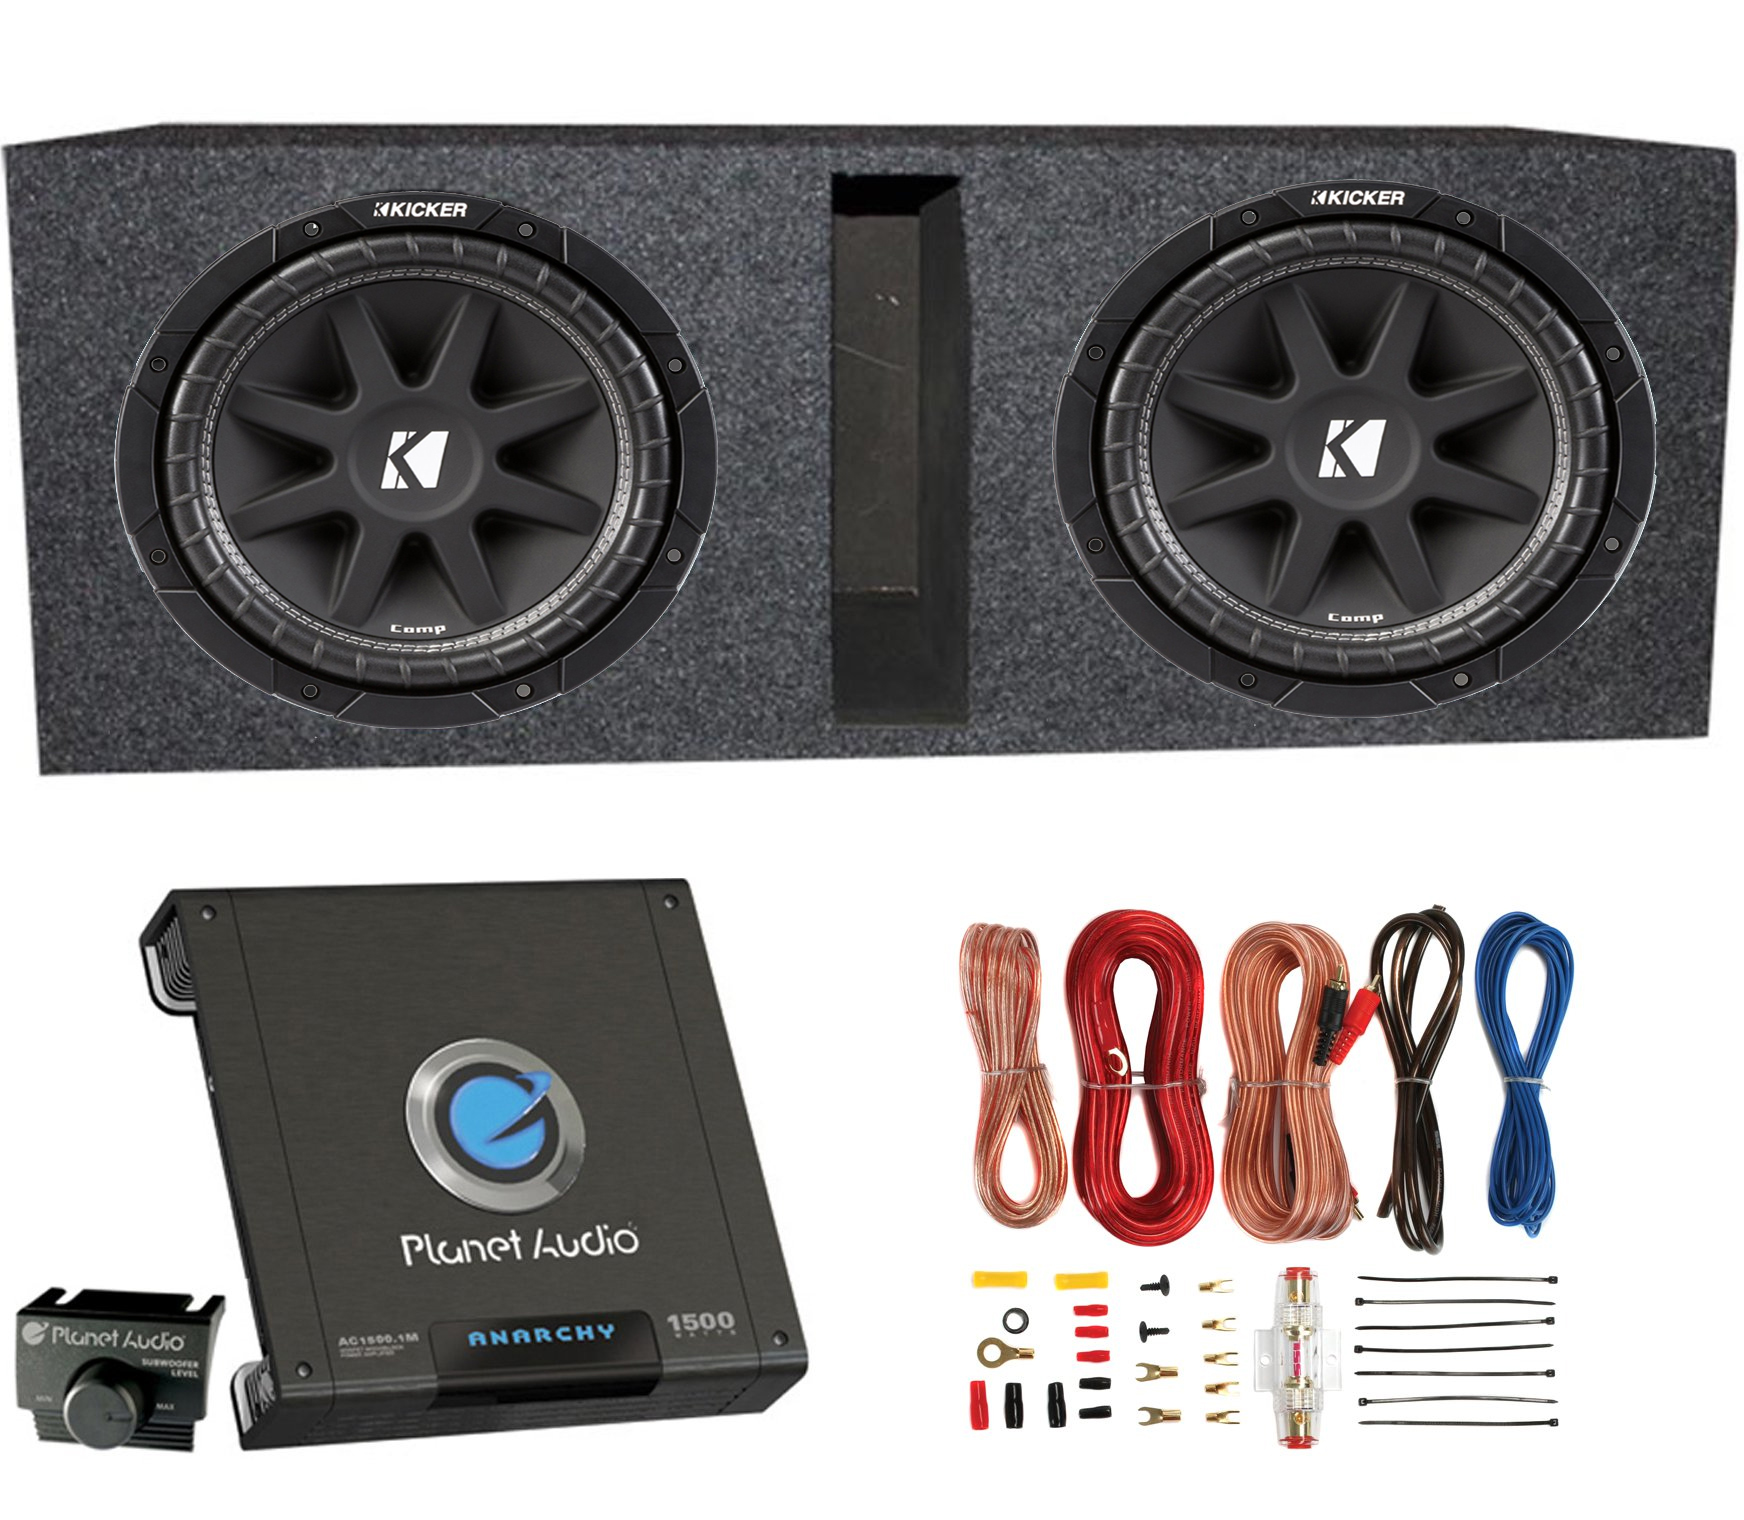 2 Kicker 43c124 600 Watt 12 Subwoofers Ported Box Enclosure Wiring Car Audio Amplifiers For Two Image Is Loading 034